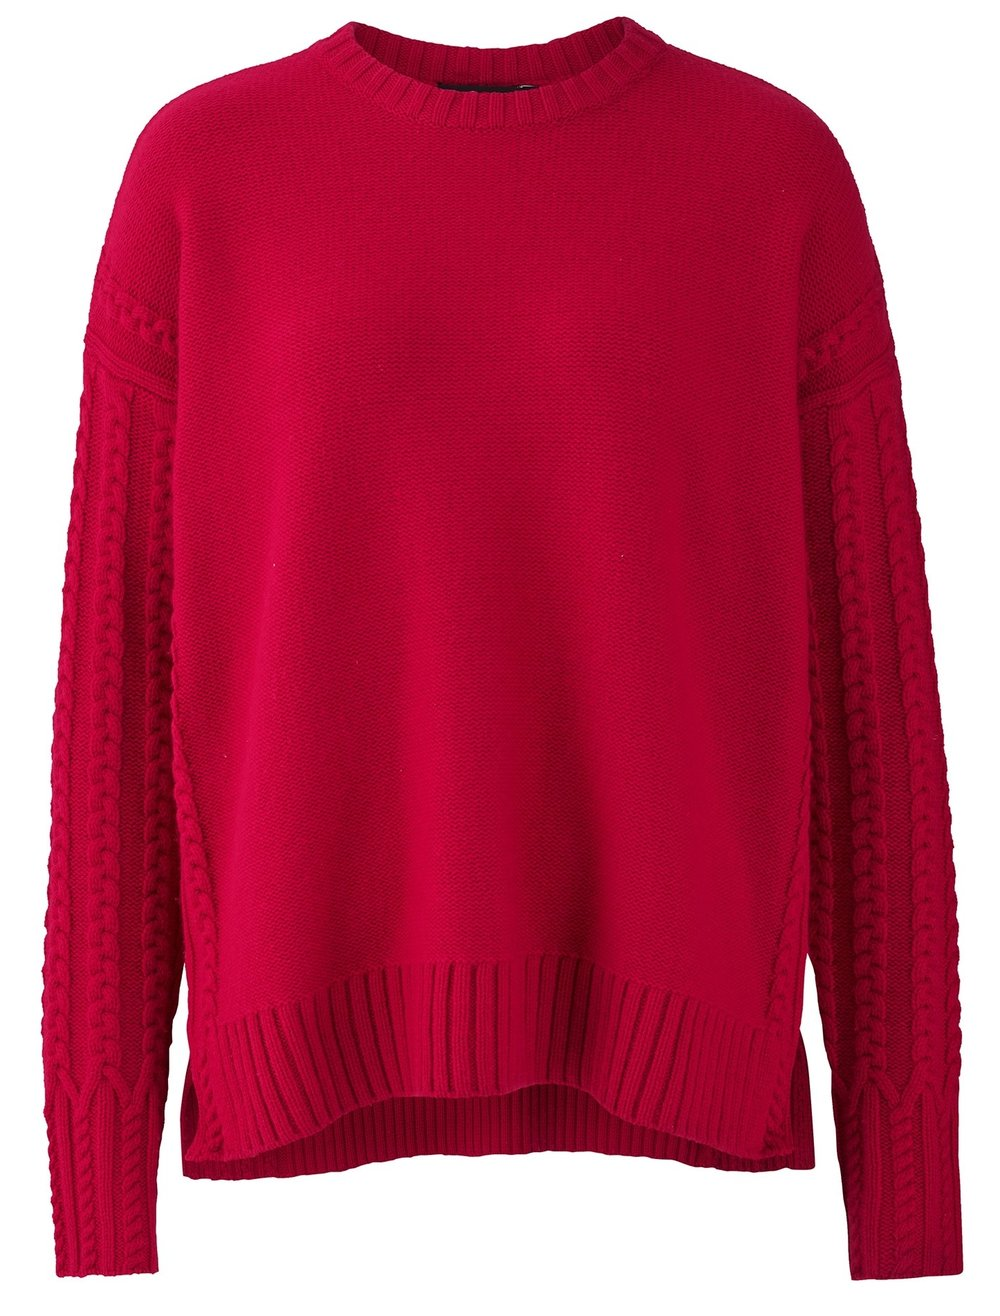 ME+EM Red Icon Cable sweater merino cashmere £199.00